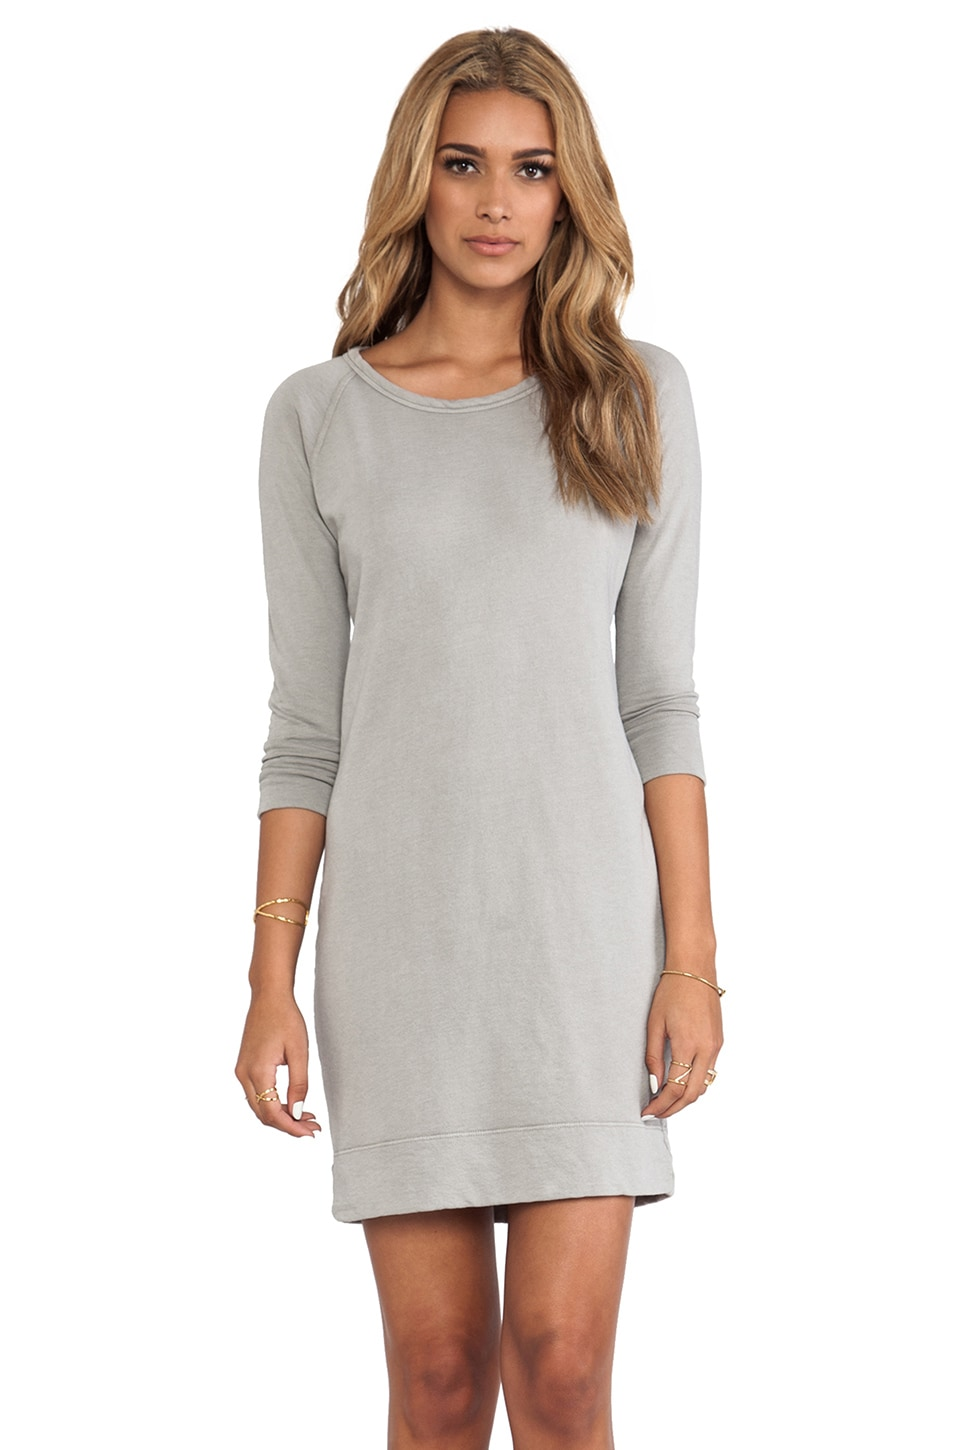 James Perse Raglan Sweatshirt Dress in Shadow